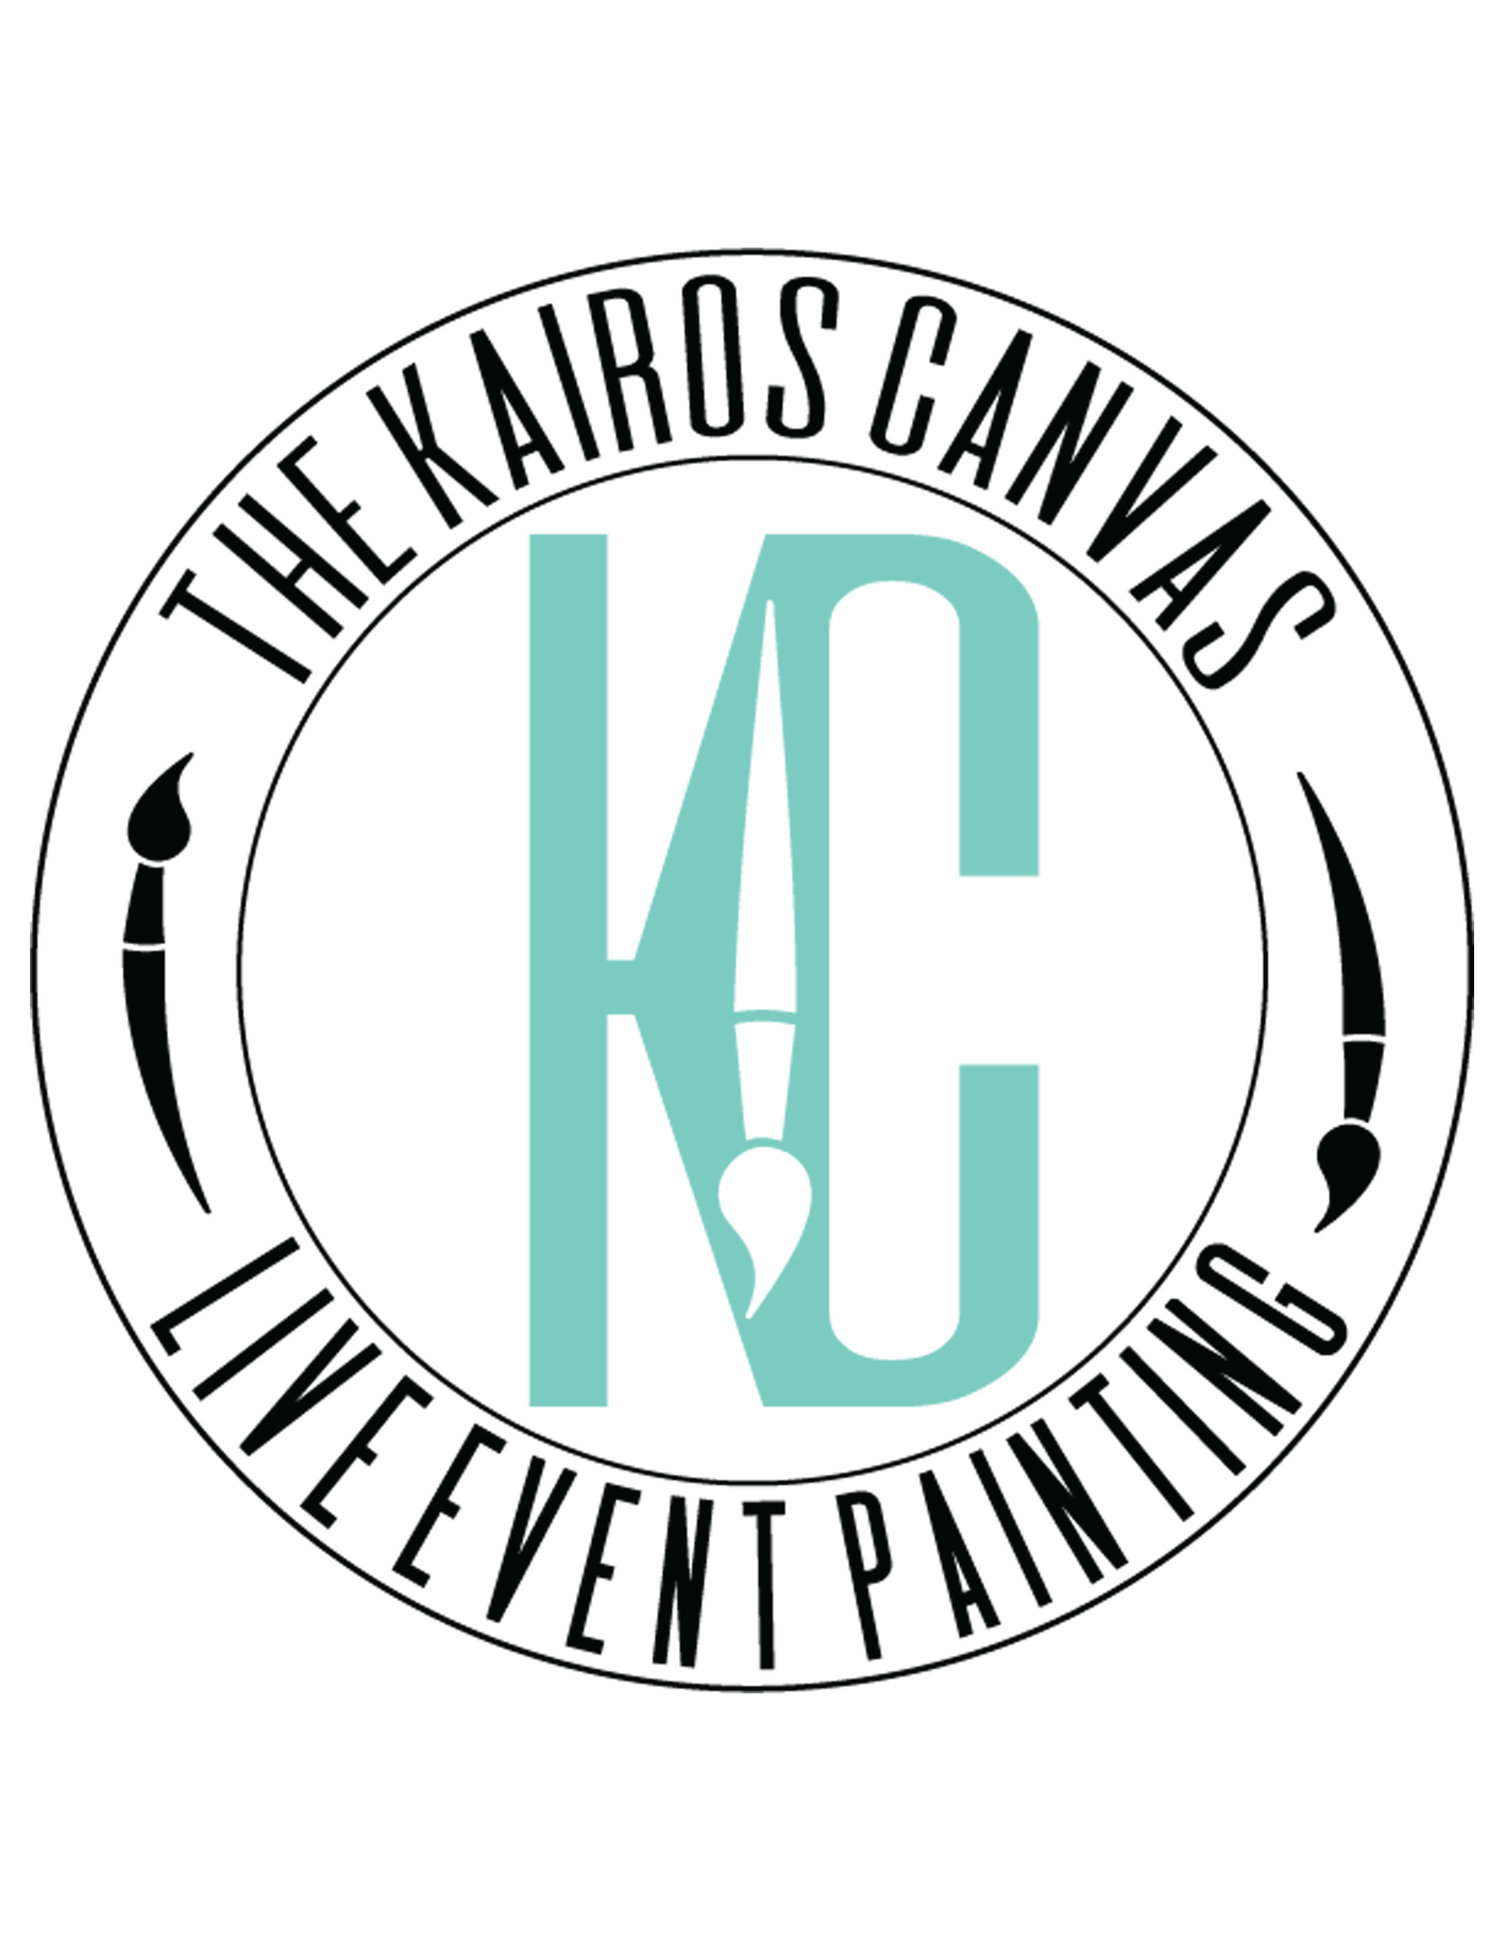 The Kairos Canvas